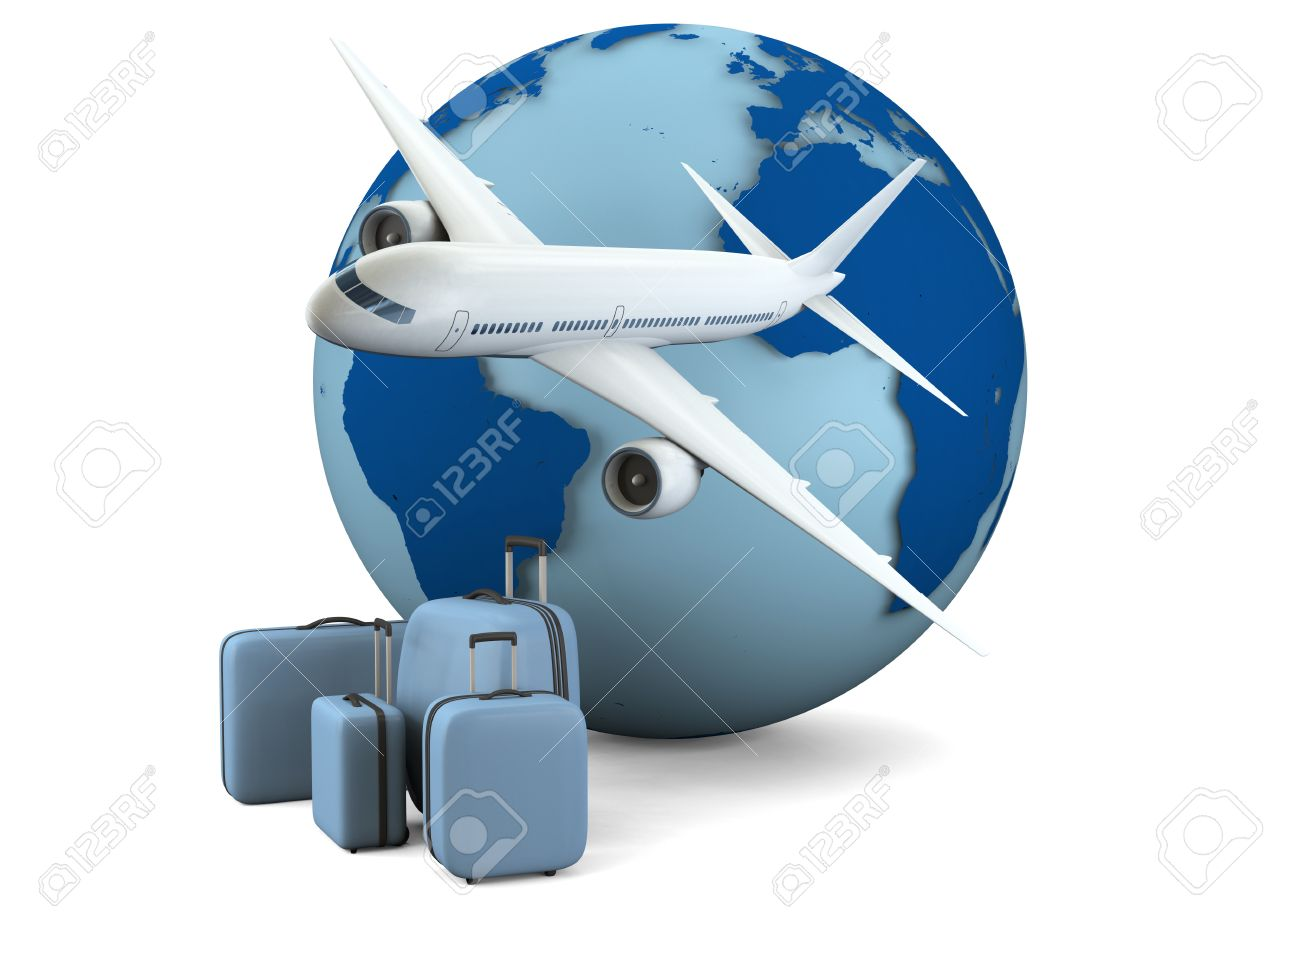 Concept Of Air Travel With Model Of Earth, Airplane And Luggage ...